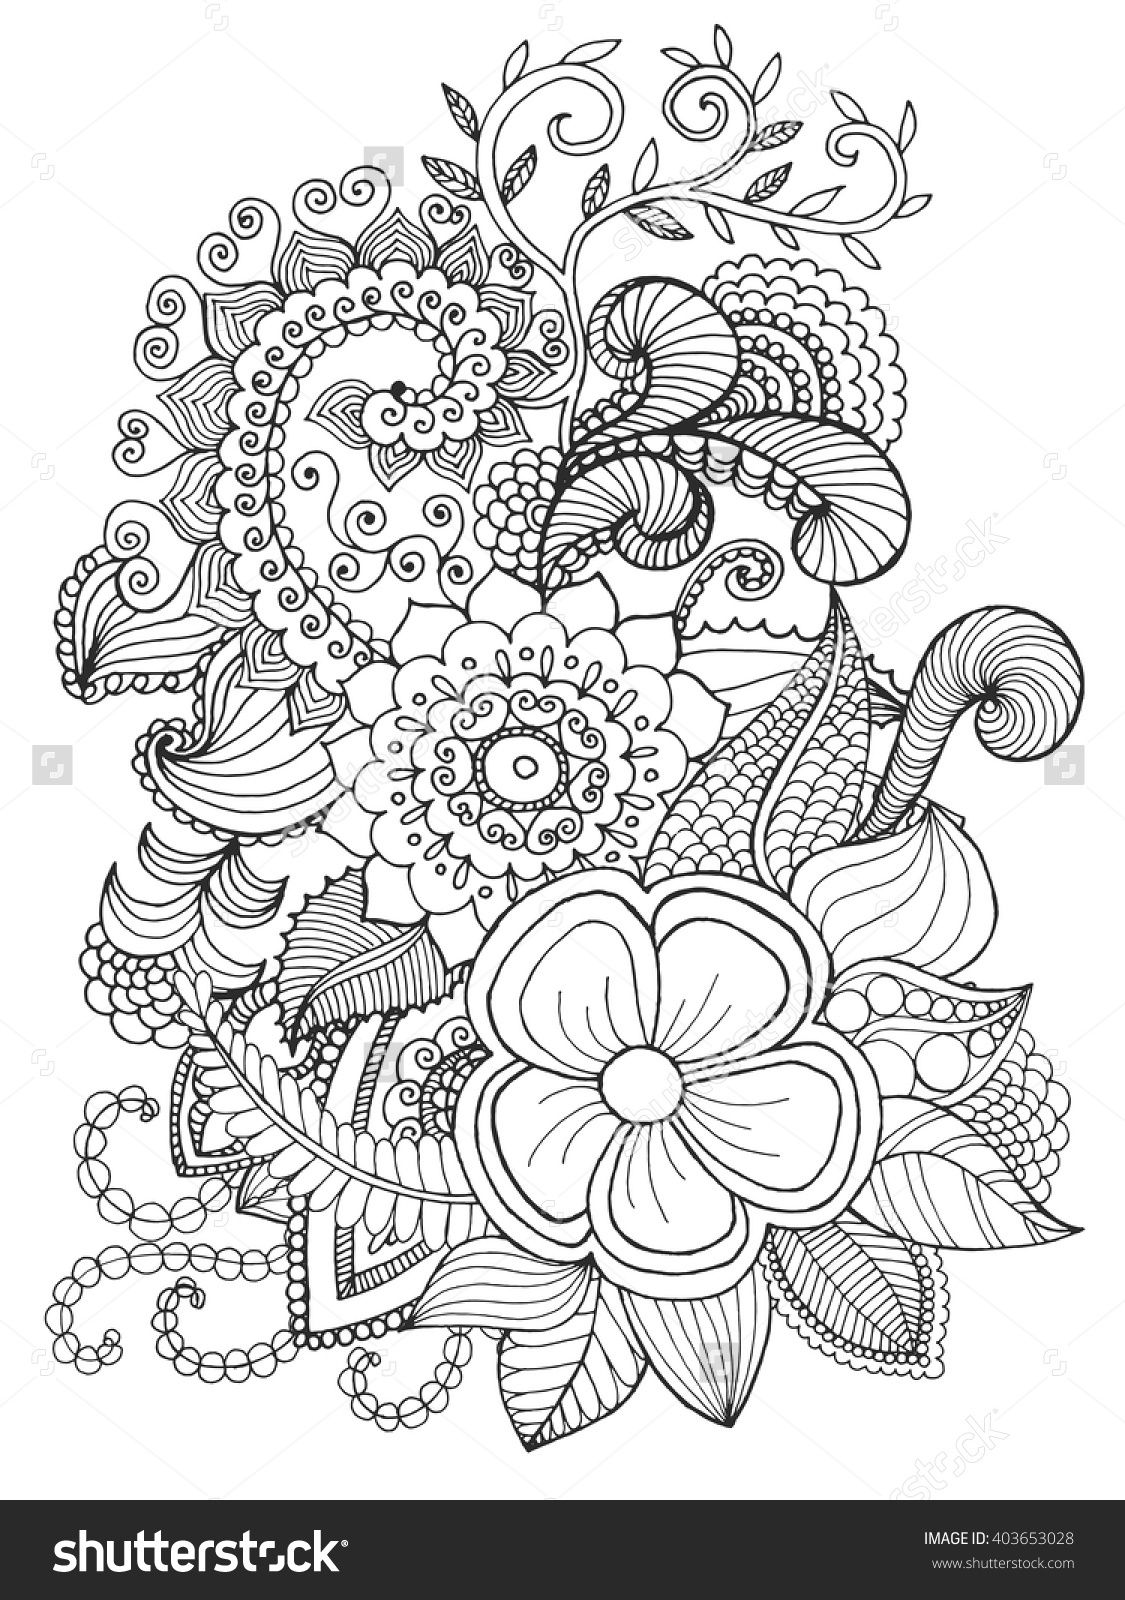 Fantasy Flowers Coloring Page Hand Drawn Doodle Floral Patterned